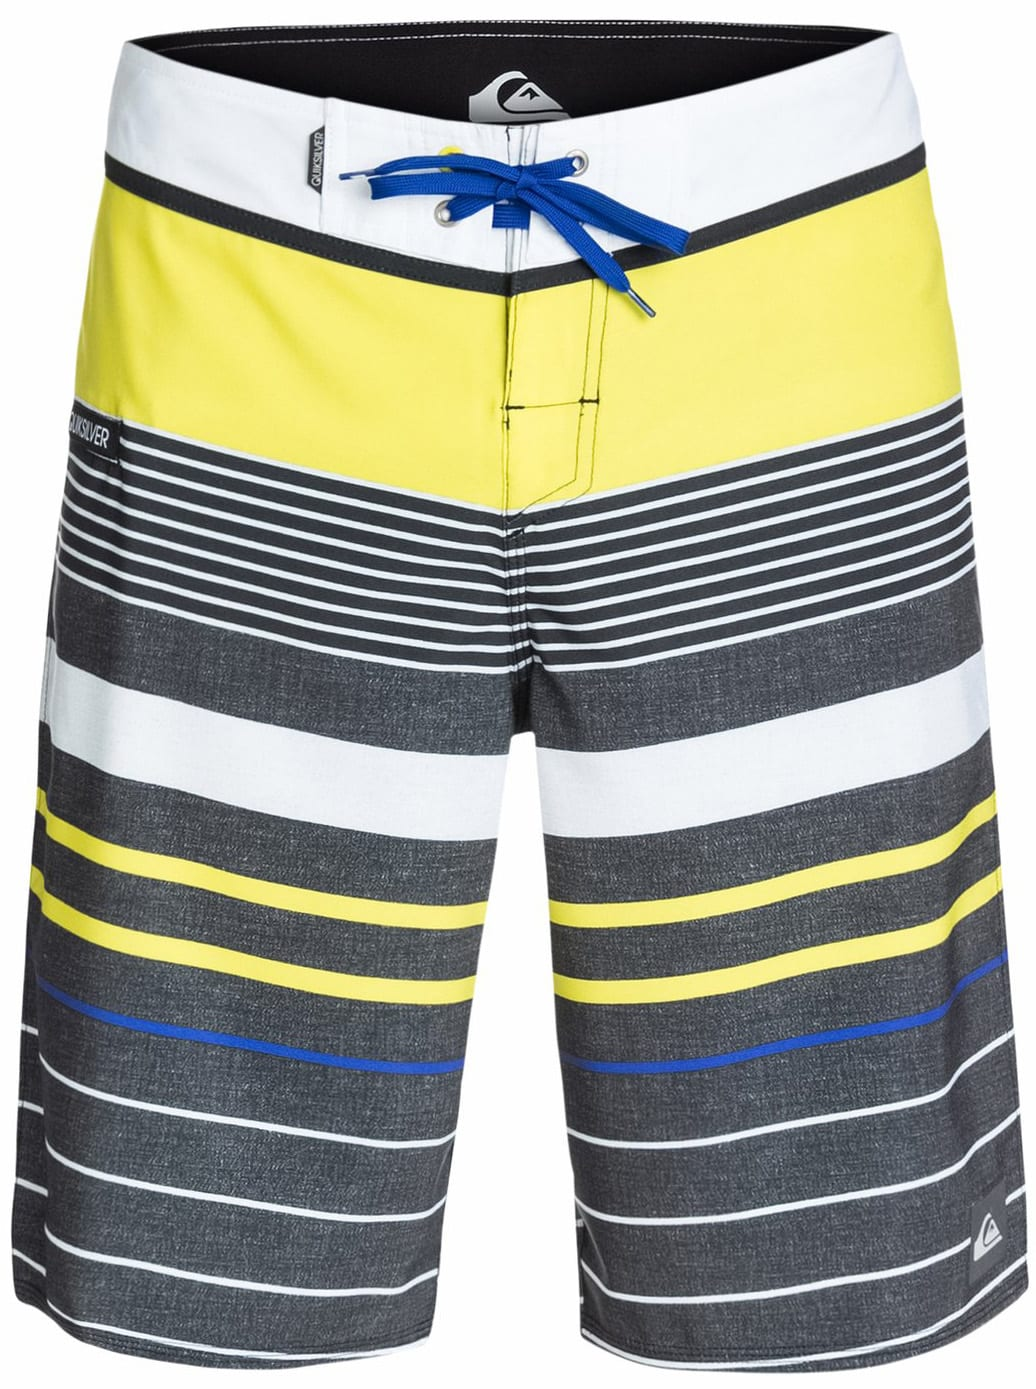 And while Quiksilver men's shirts, boardshorts and sandals have a laid-back, comfortable design, Quiksilver also knows it represents a competitive lifestyle and creates clothing and footwear that can take on the hardcore surfer's pursuits.